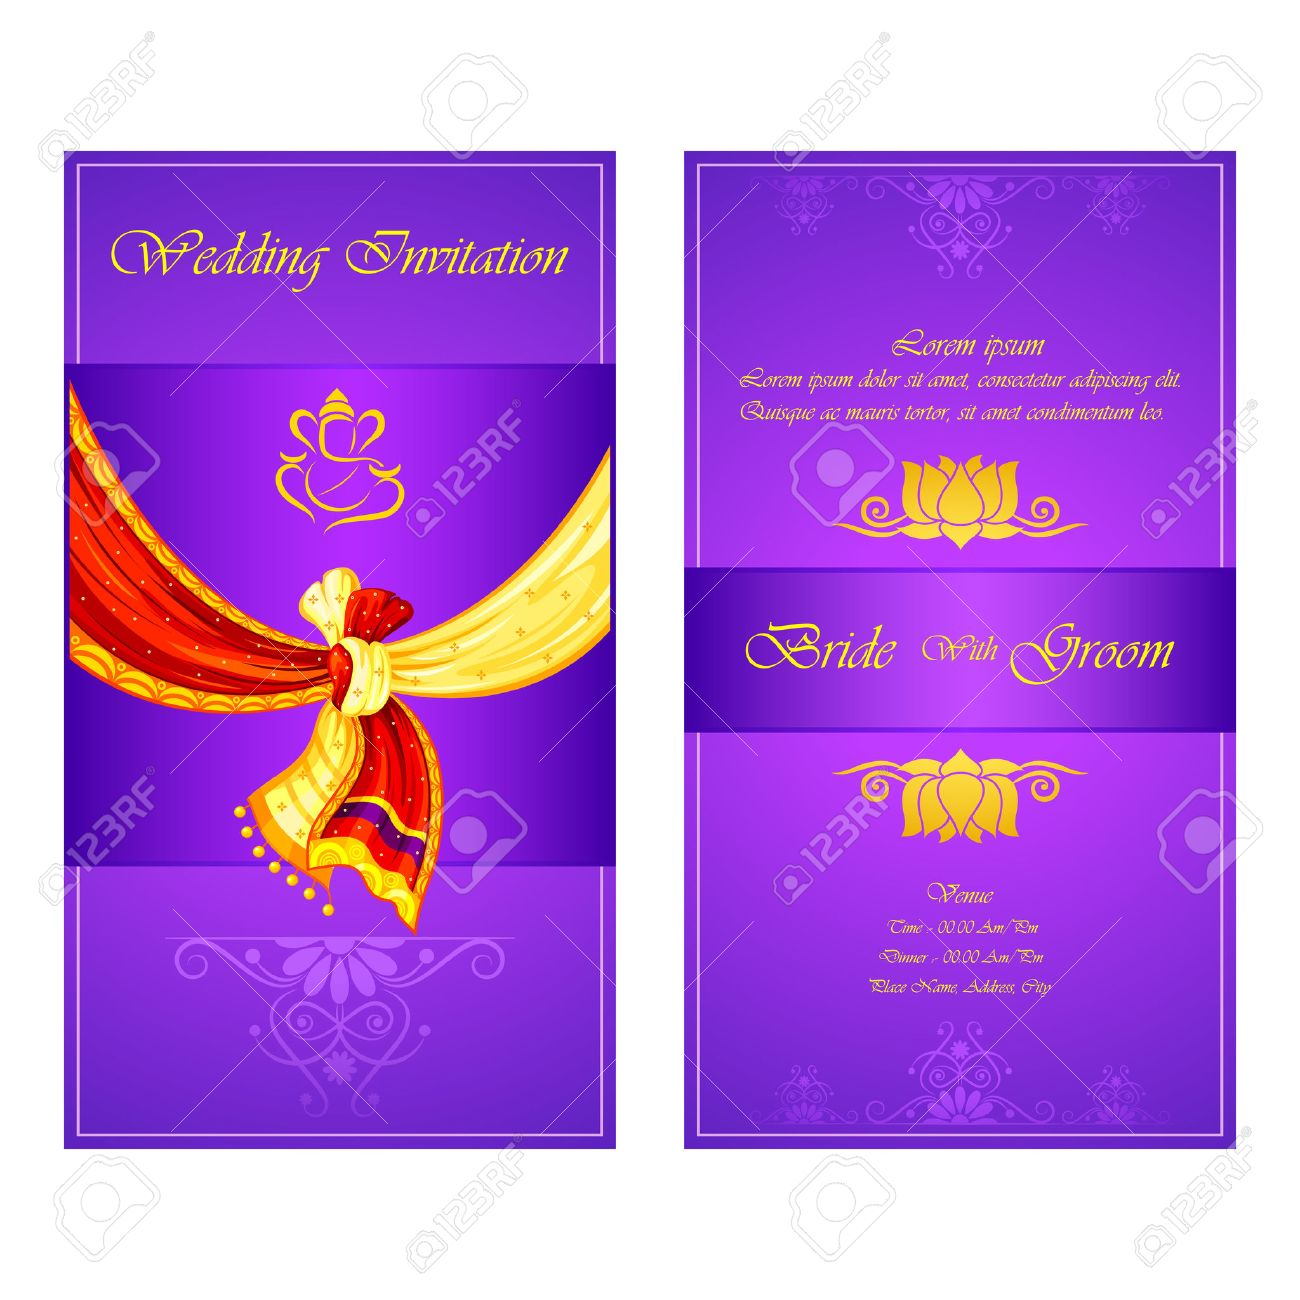 Vector Illustration Of Indian Wedding Invitation Card Royalty Free – Indian Wedding Invitation Card